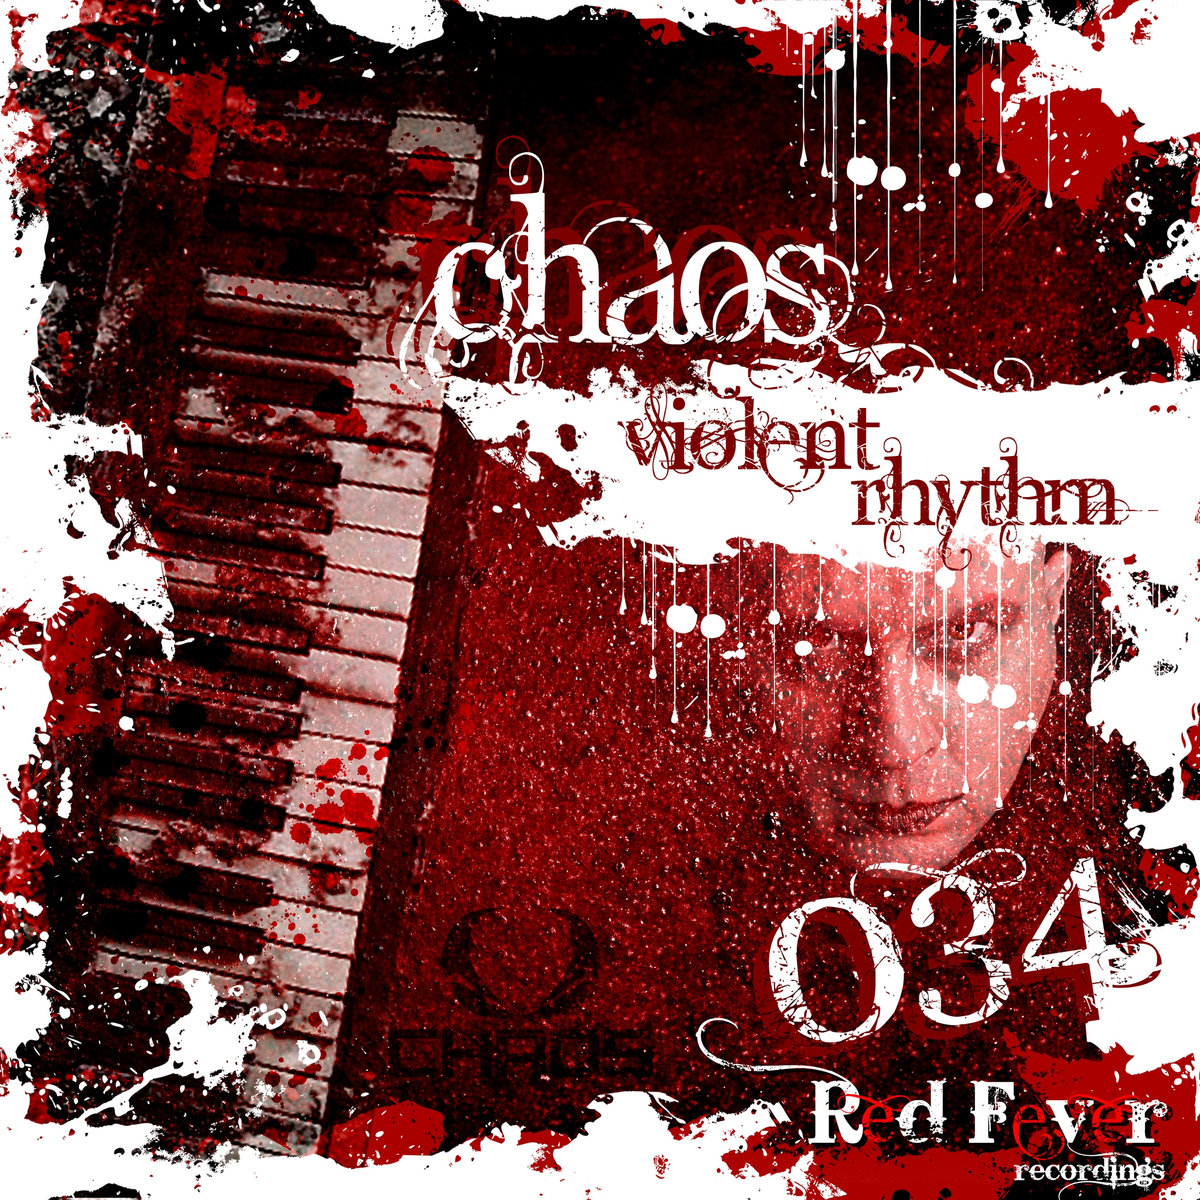 Chaos - The Symbol @ 'Violent Rhythm' album (electronic, chaos)